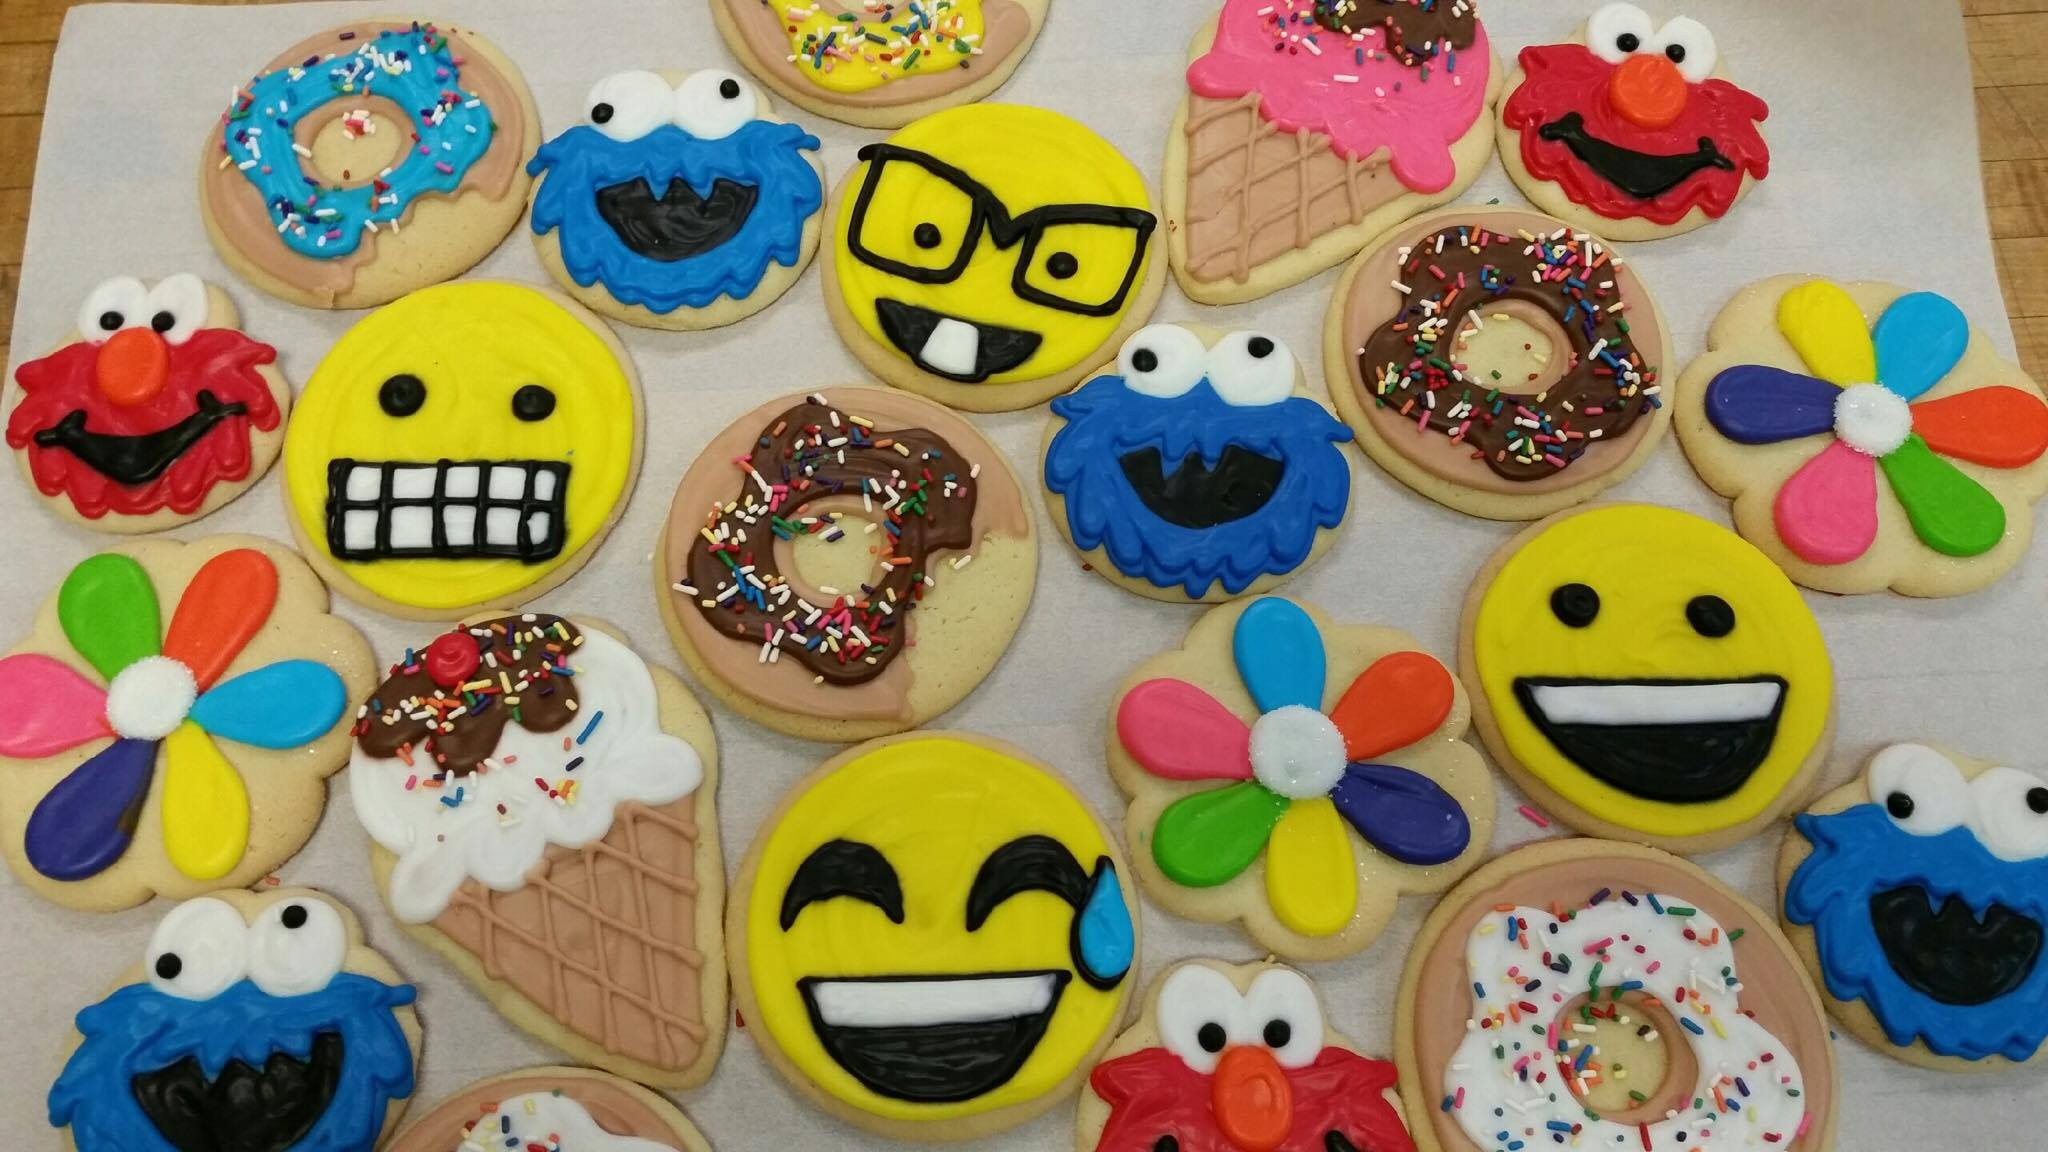 Assorted Decorated Cookies